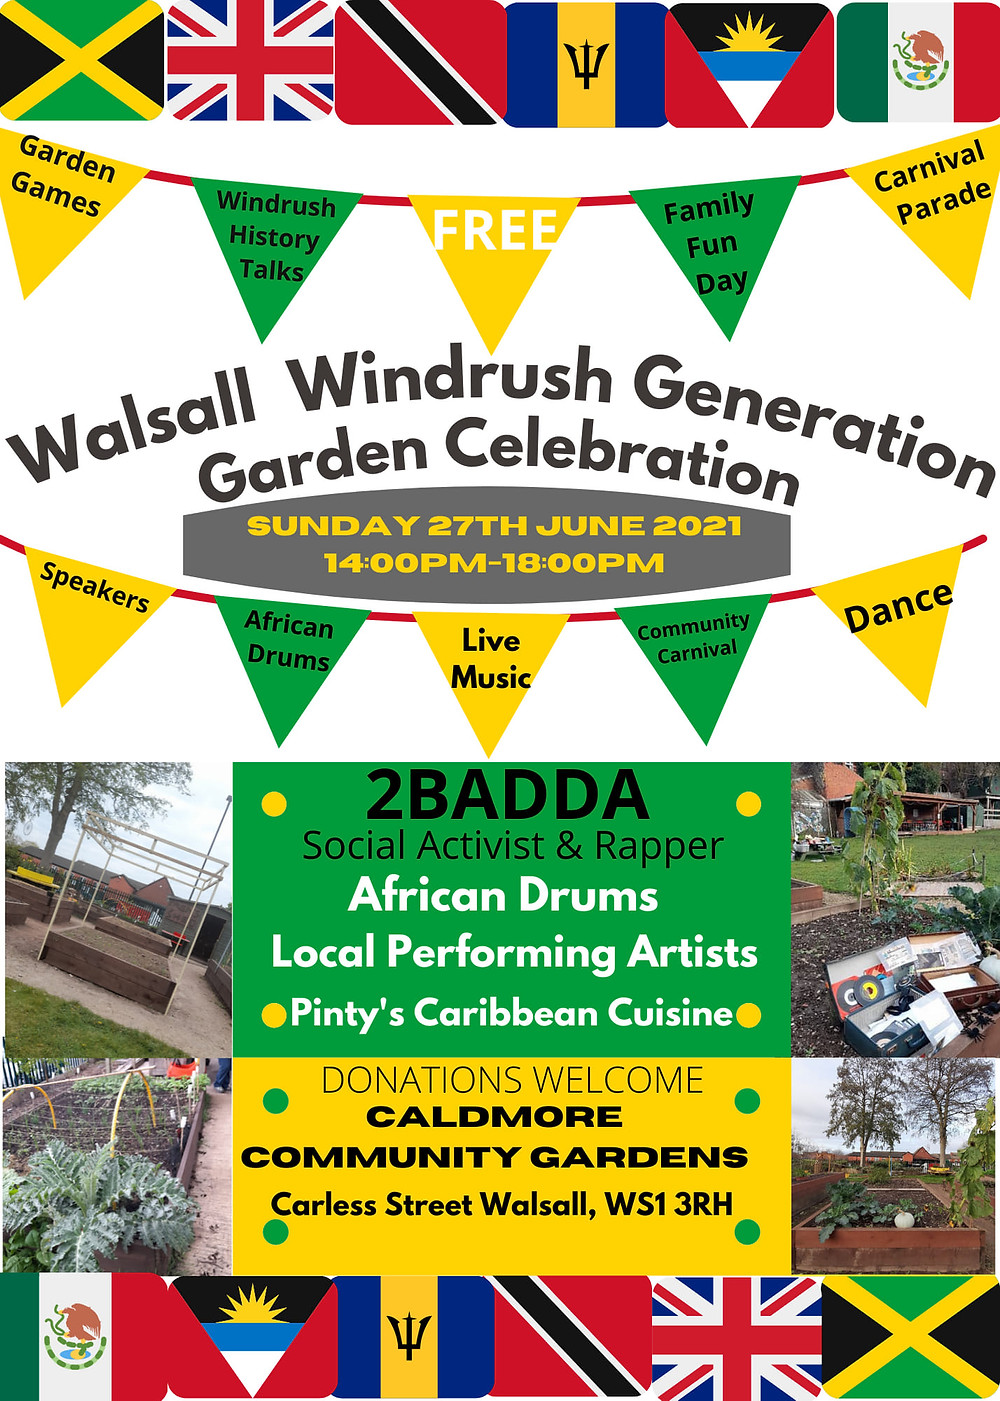 Walsall Windrush Generation Garden Celebration - 27th June 2021 from 2pm to 6pm